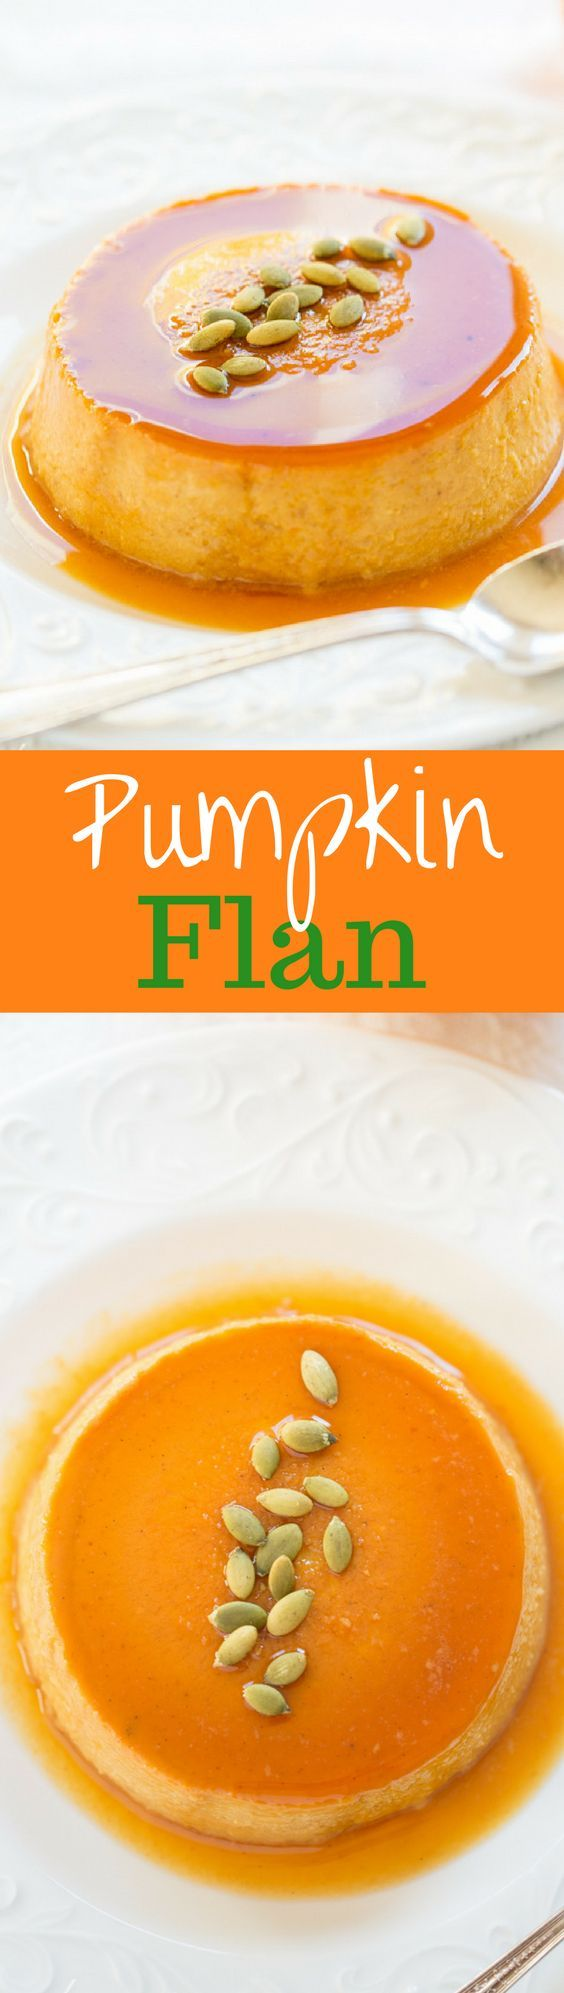 Pumpkin Caramel Flan - a silky smooth, creamy custard that's loaded with pumpkin, and pumpkin pie spice, with a layer of soft caramel on top. Garnish with roasted, salted pepitas for a wonderful treat. www.savingdessert.com